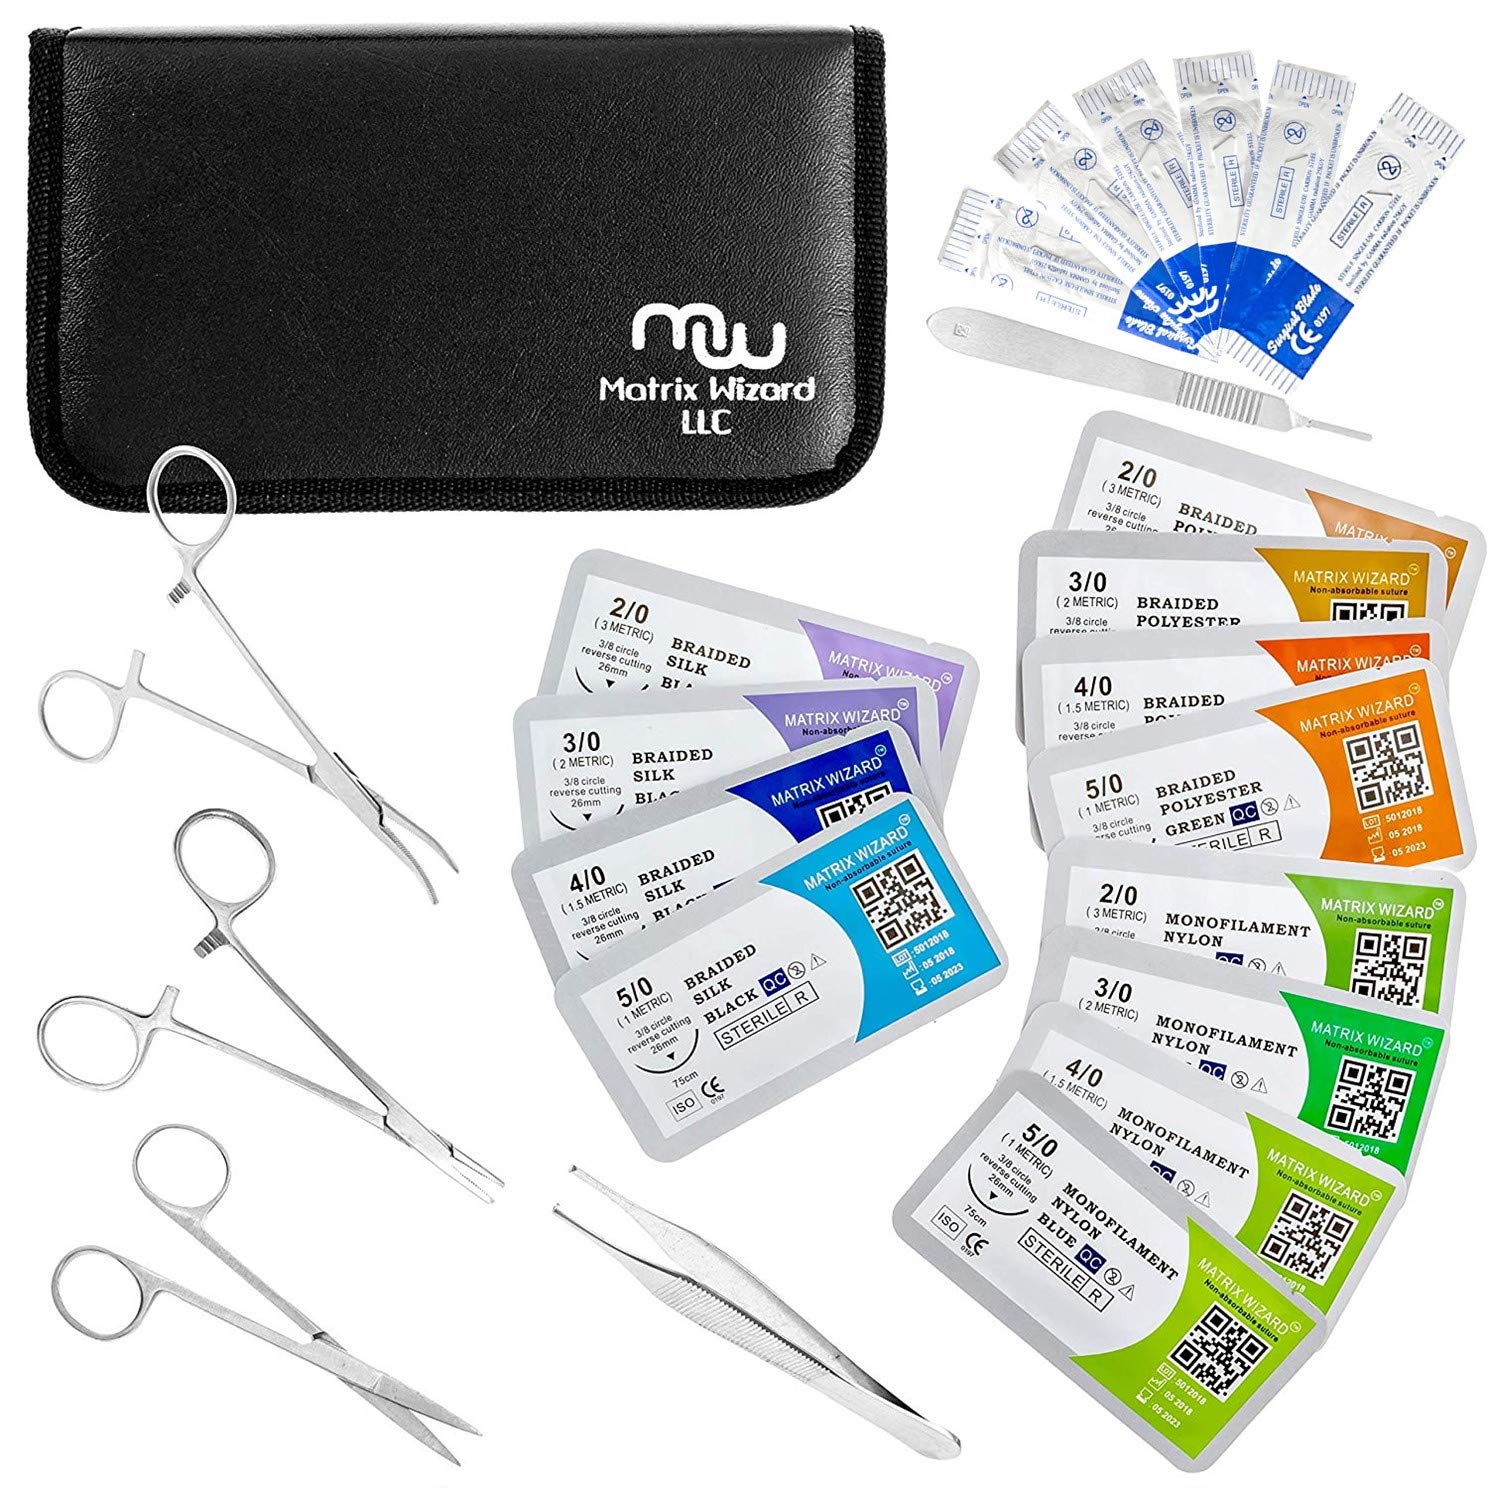 Suture Threads with Needle + Tools for Medical Student's Surgical Practice Kit; Outdoor Camping Emergency Survival Demo; Hospital First Aid Training (Mixed Suture 0-2, 0-3, 0-4, 0-5 +Tools 24Pk Total) by Matrix Wizard